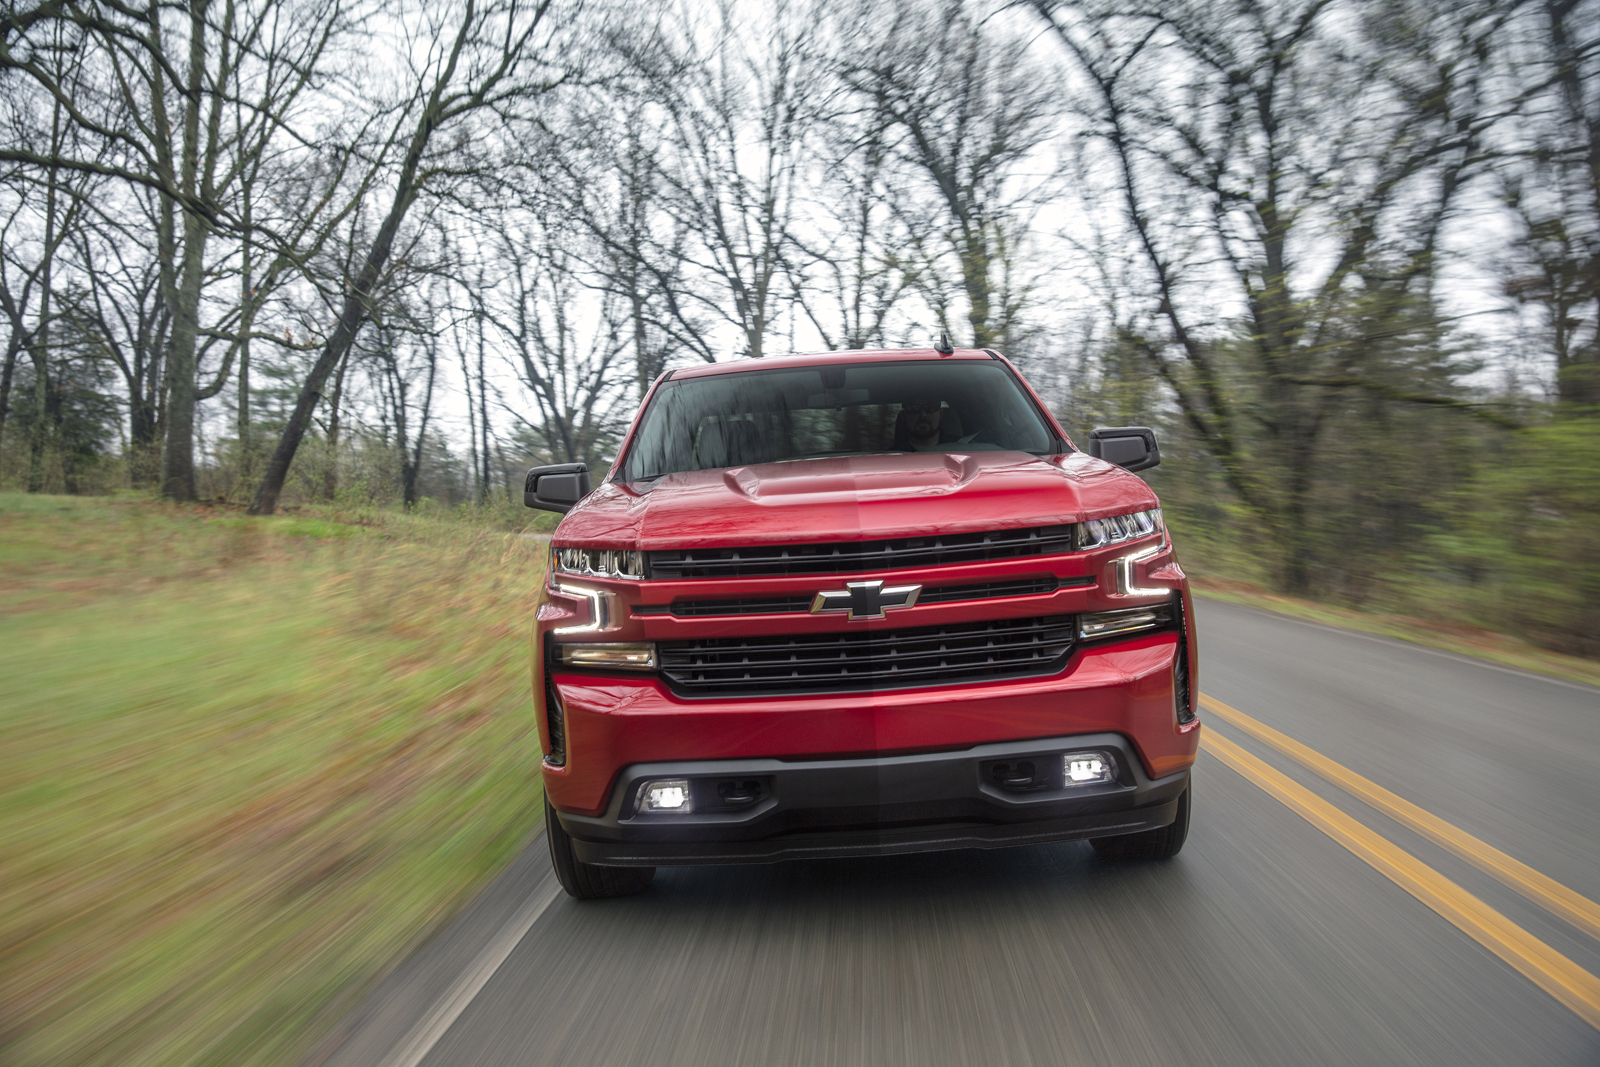 2019 Chevrolet Silverado Gains 310 HP 2.7L Turbo Four ...